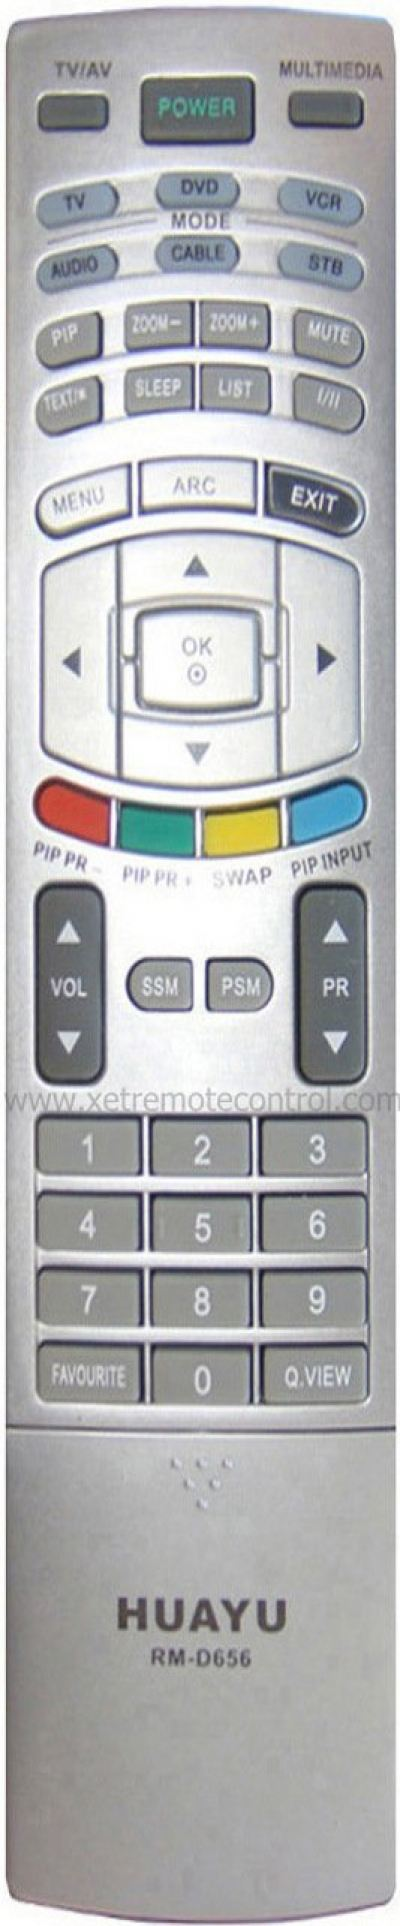 RM-D656 LG LCD/LED TV REMOTE CONTROL